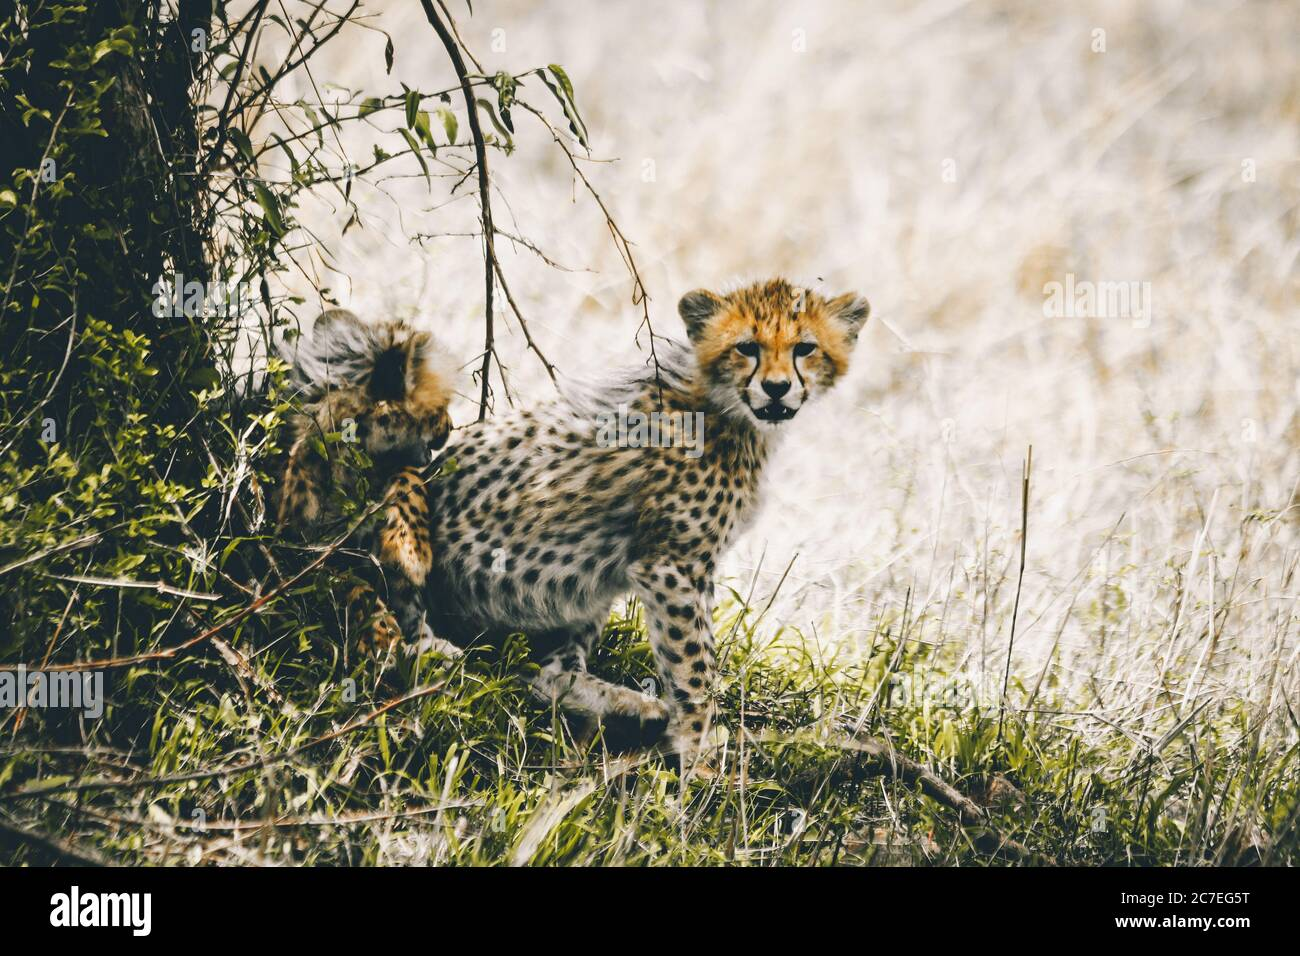 Beautiful shot of cute baby cheetahs playing in a field near the bushes during daytime Stock Photo